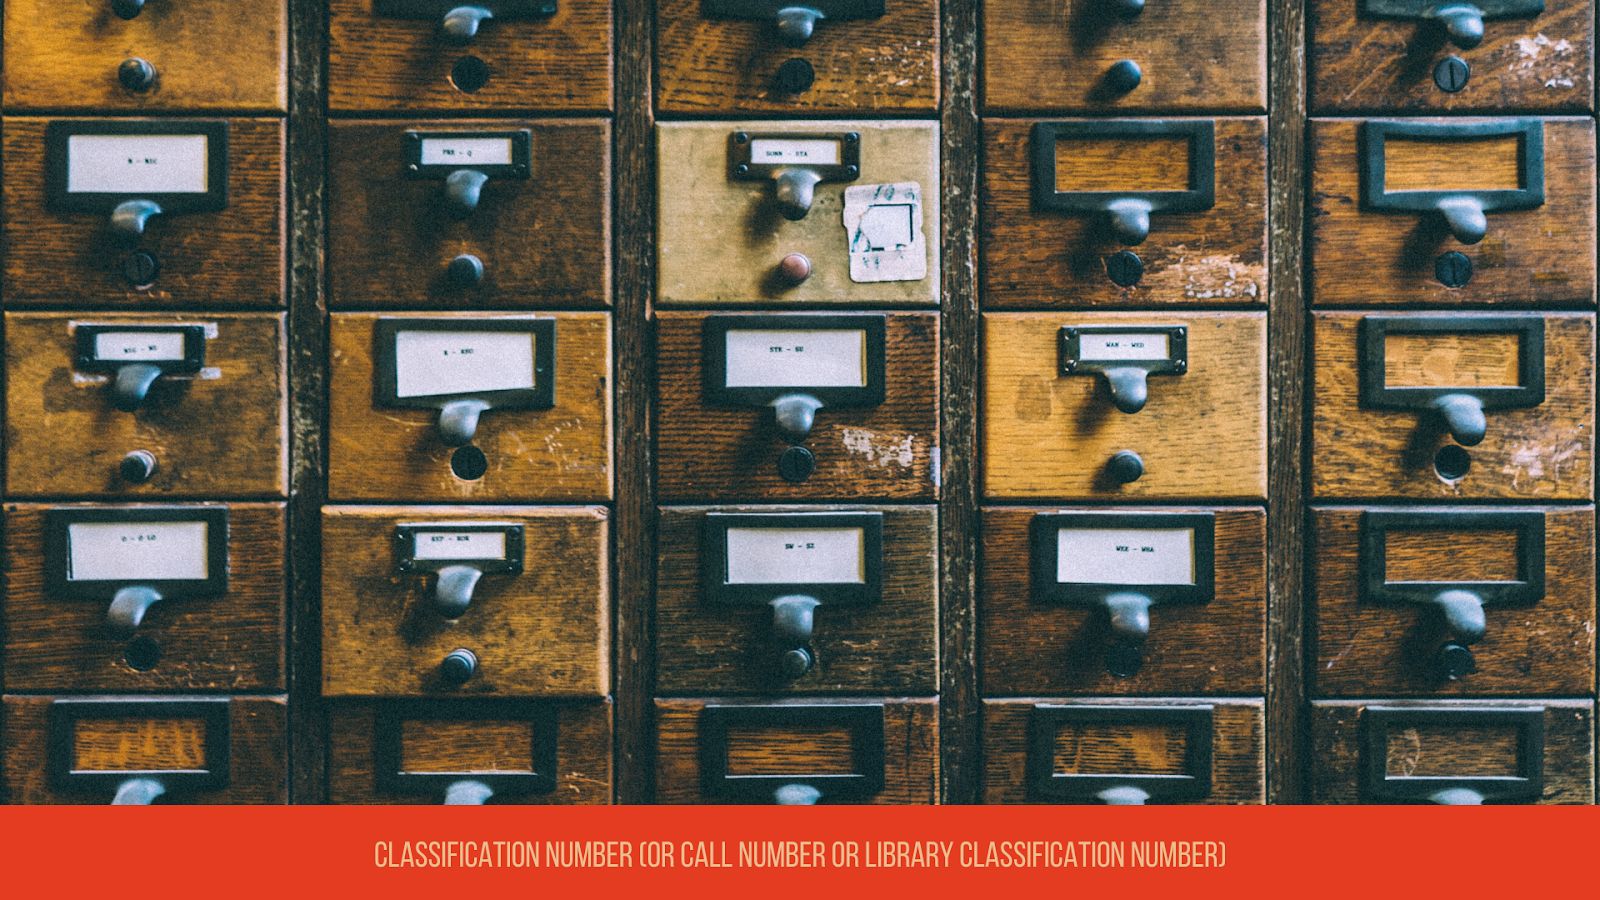 CLASSIFICATION NUMBER (OR CALL NUMBER OR LIBRARY CLASSIFICATION NUMBER)